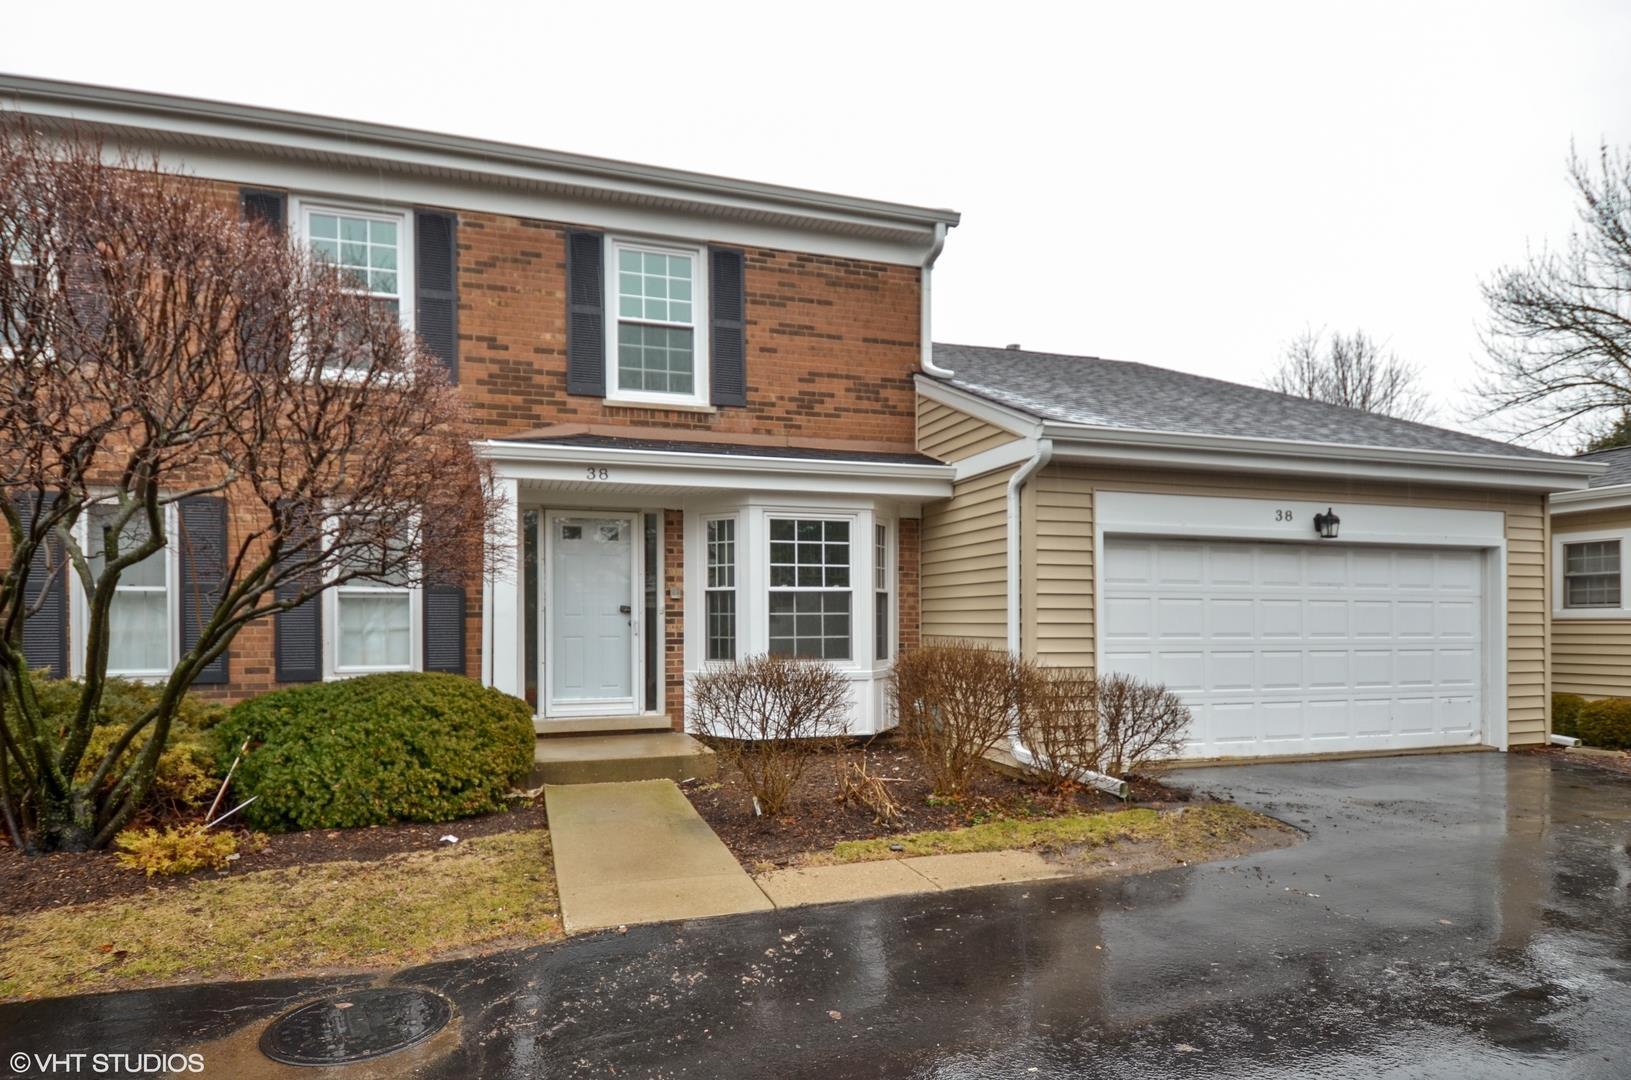 38 The Court of Greenway Court, Northbrook, IL 60062 - #: 10905387